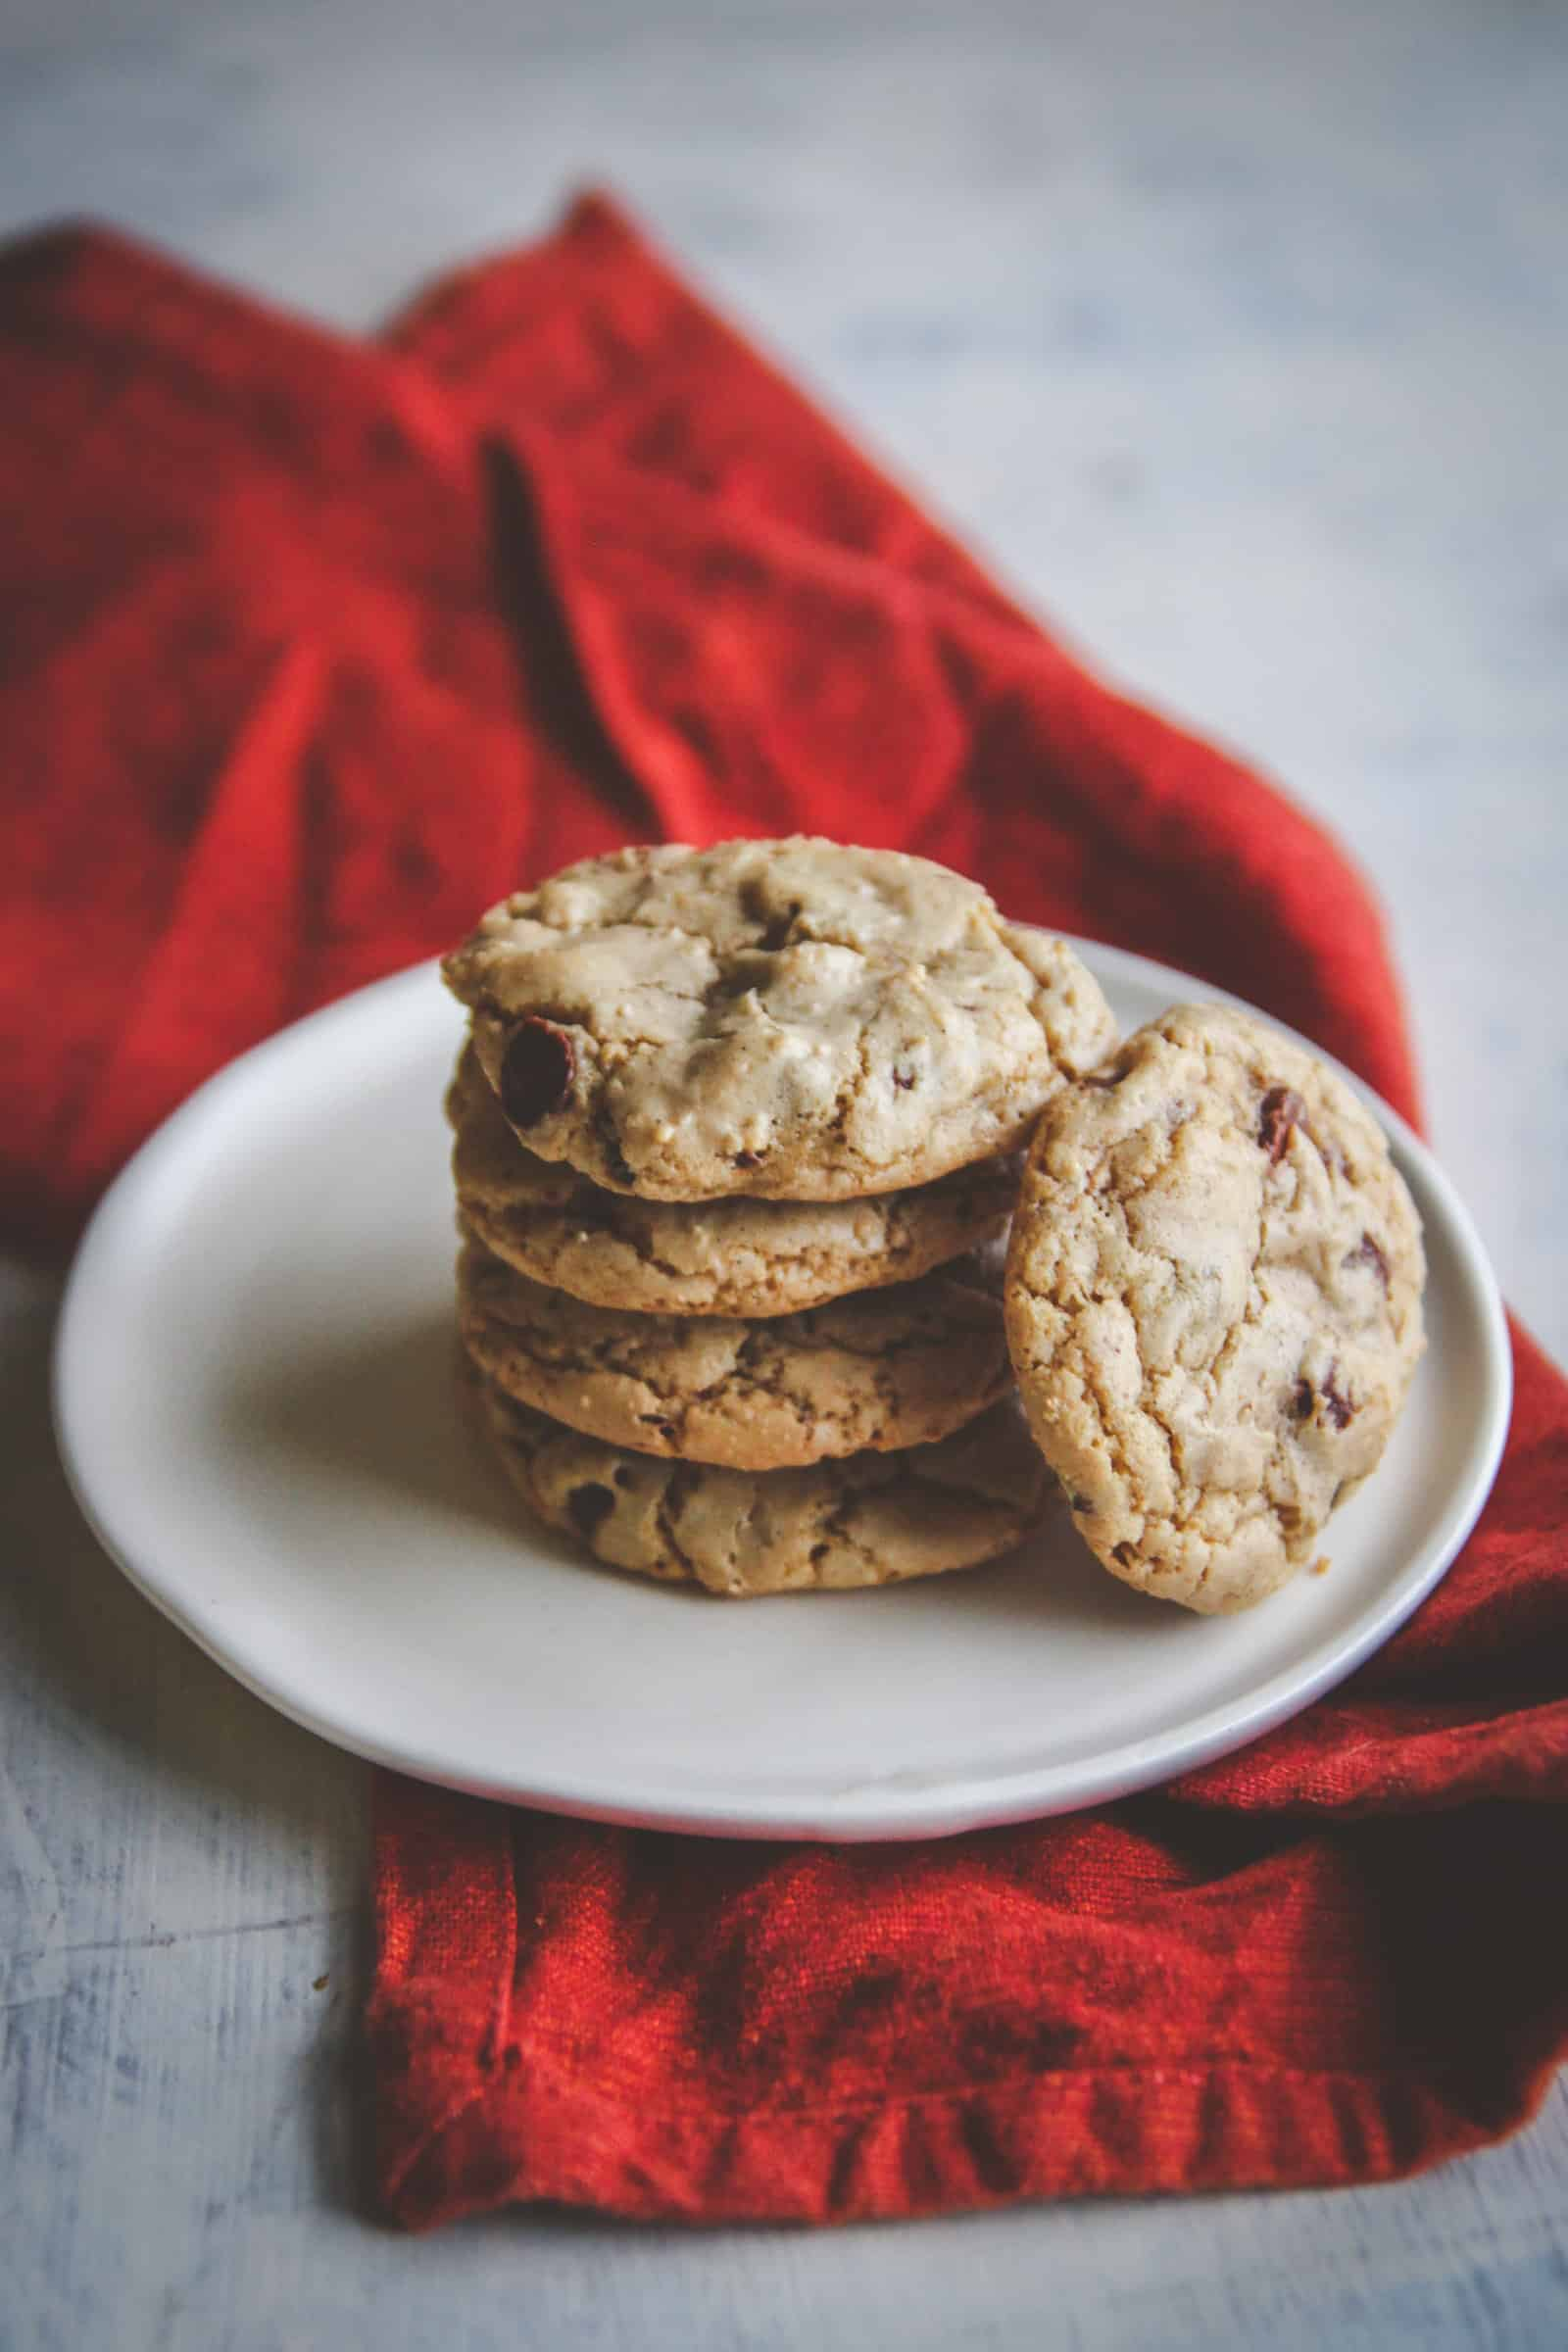 Simply the best chocolate chunk cookie recipe